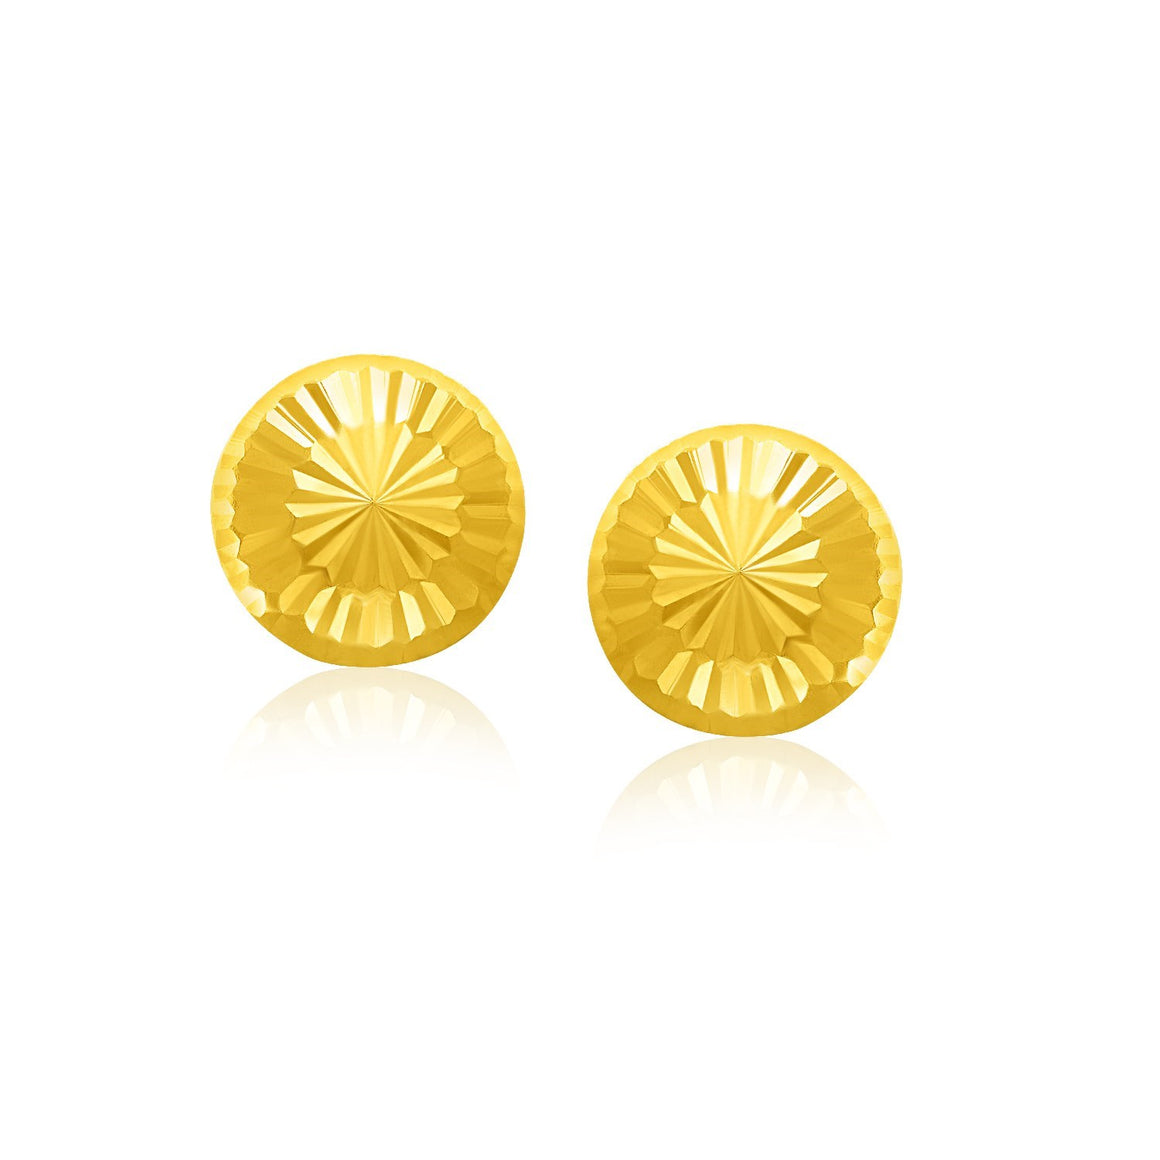 14k Yellow Gold Textured Flat Style Stud Earrings